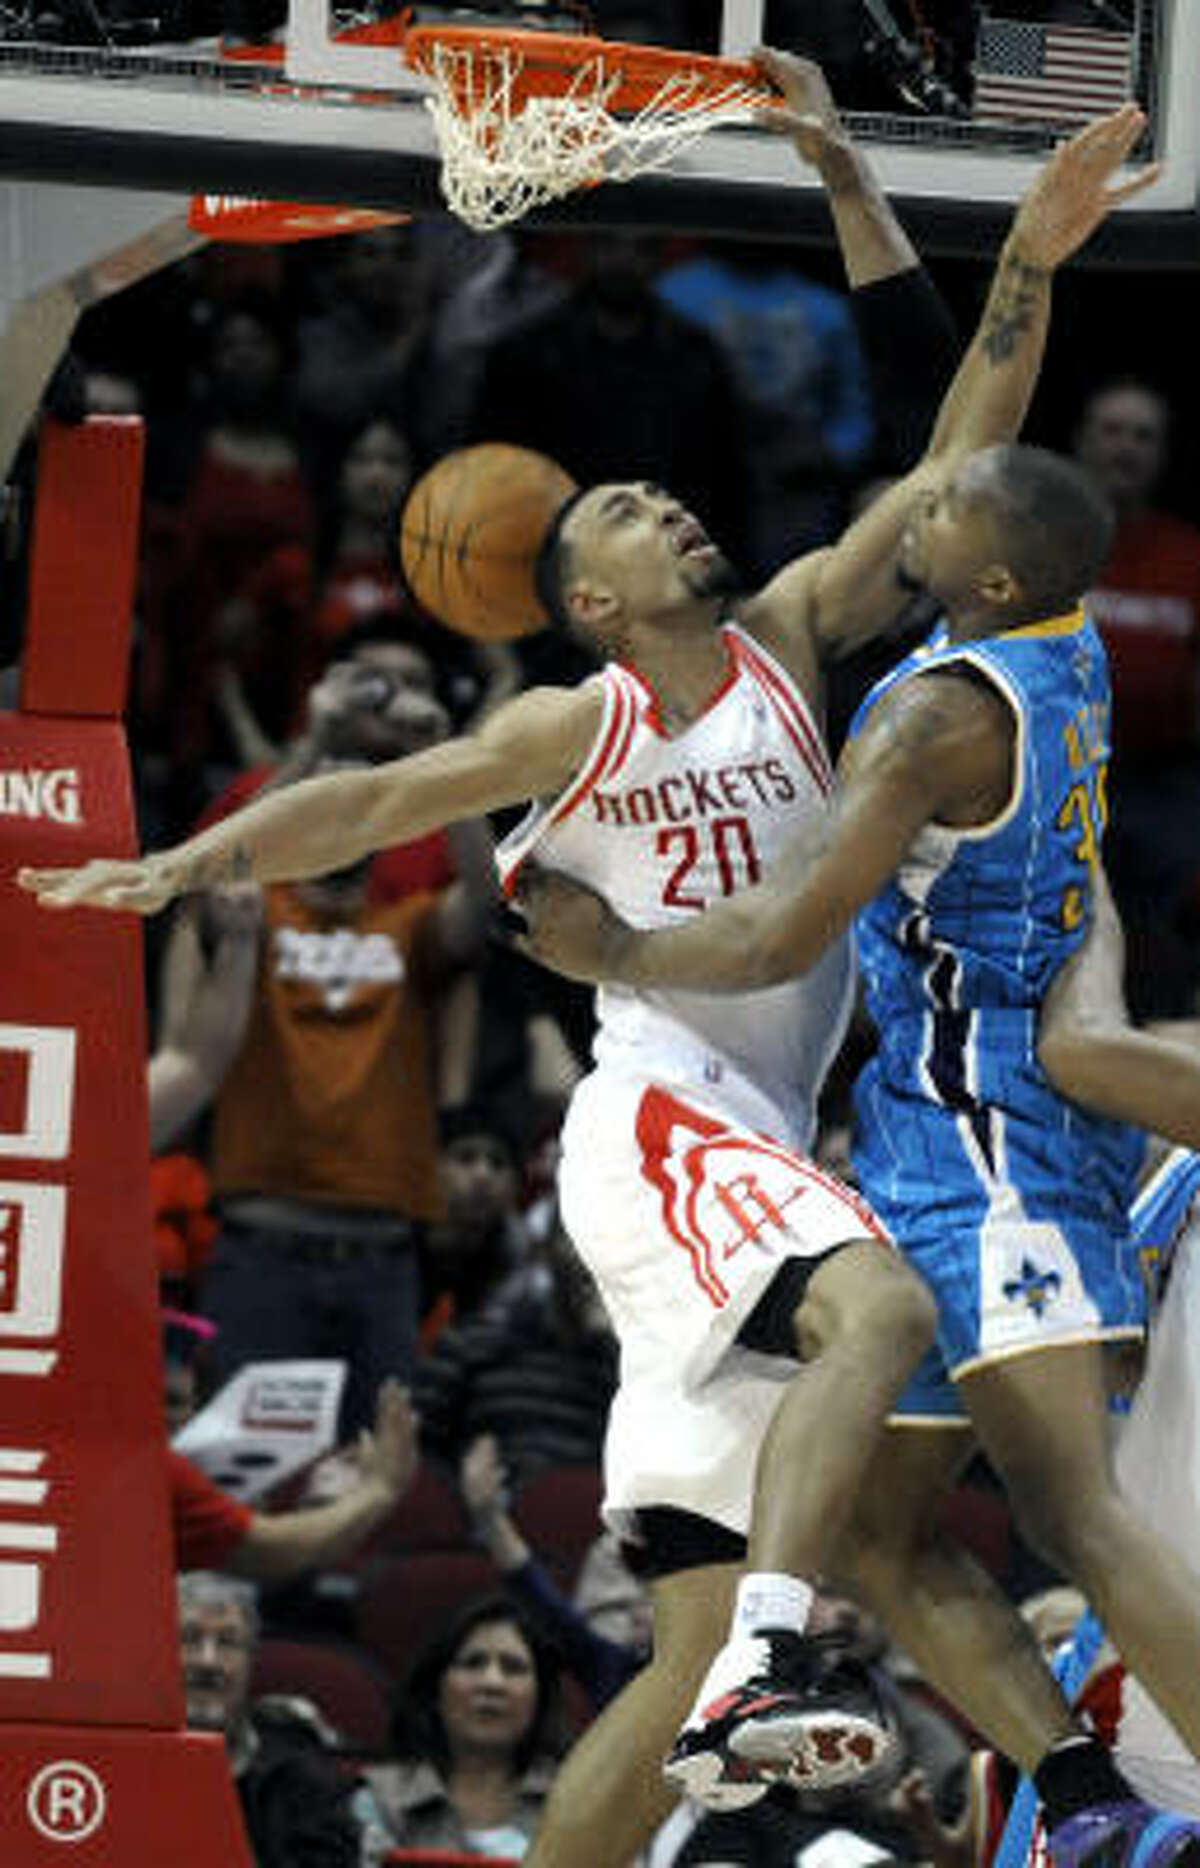 Hornets forward David West, right, dunks the ball over Rockets forward Jared Jeffries in the second half. West scored a game-high 29 points.